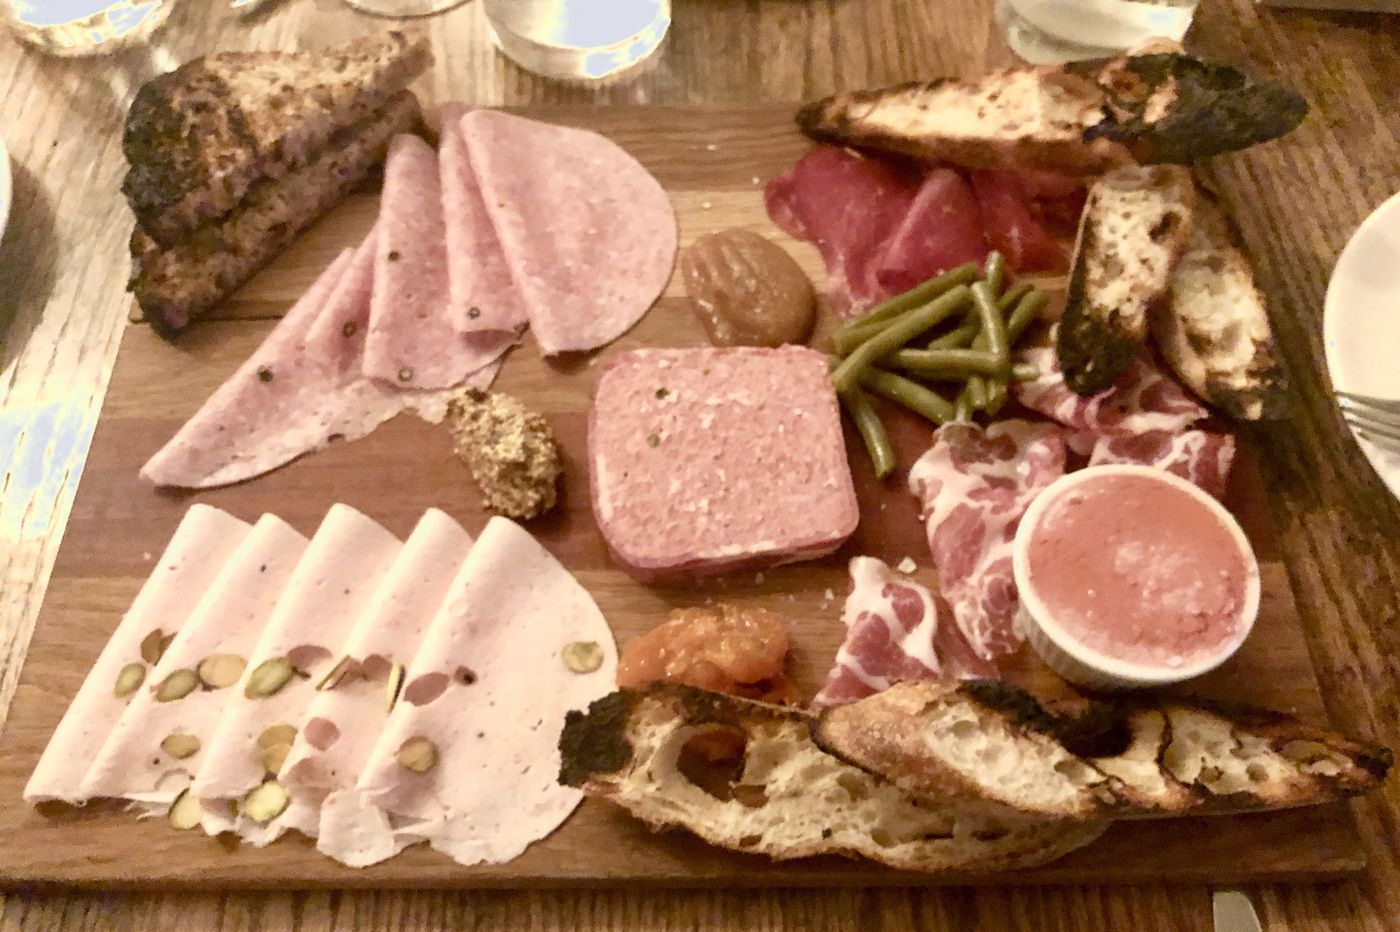 Where to get the best charcuterie in Philly